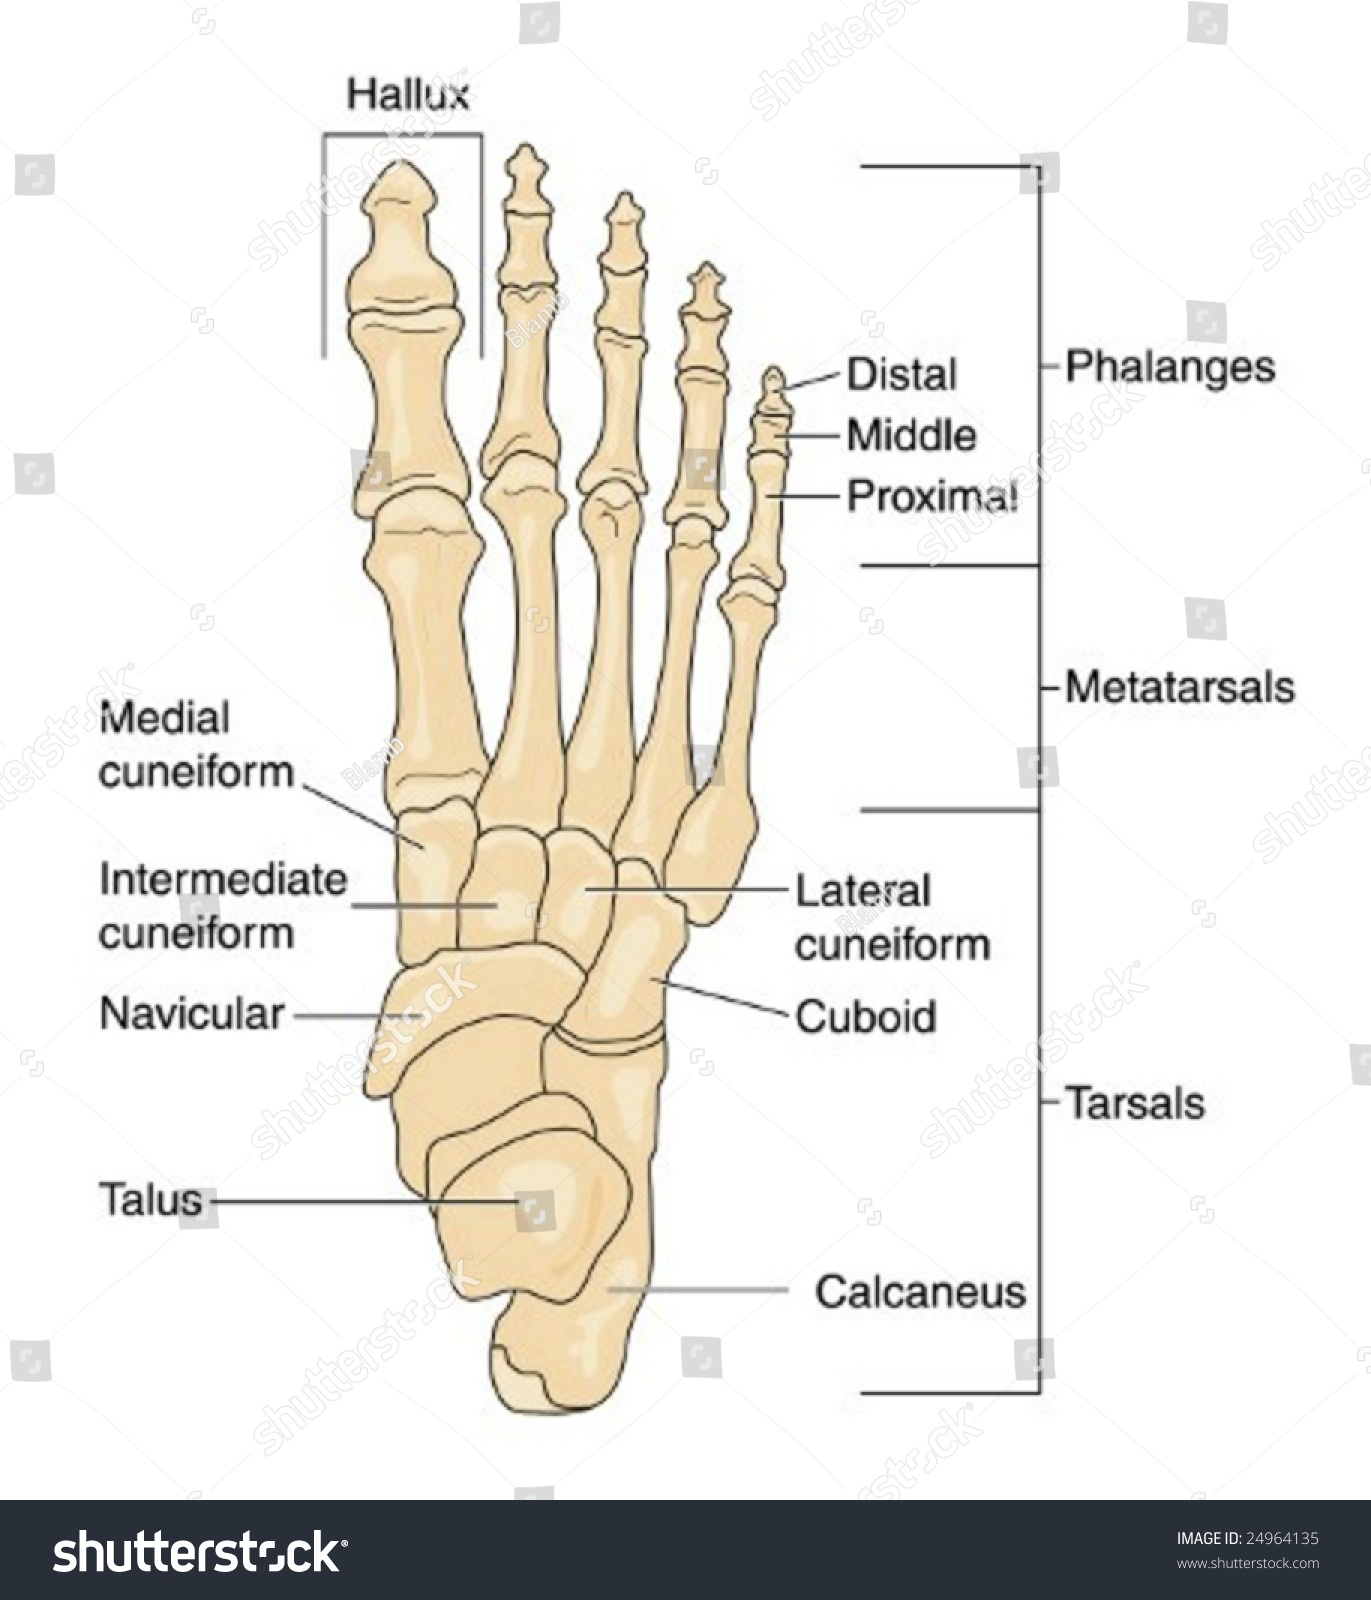 hight resolution of foot diagram to label wire diagram herefoot diagram to label